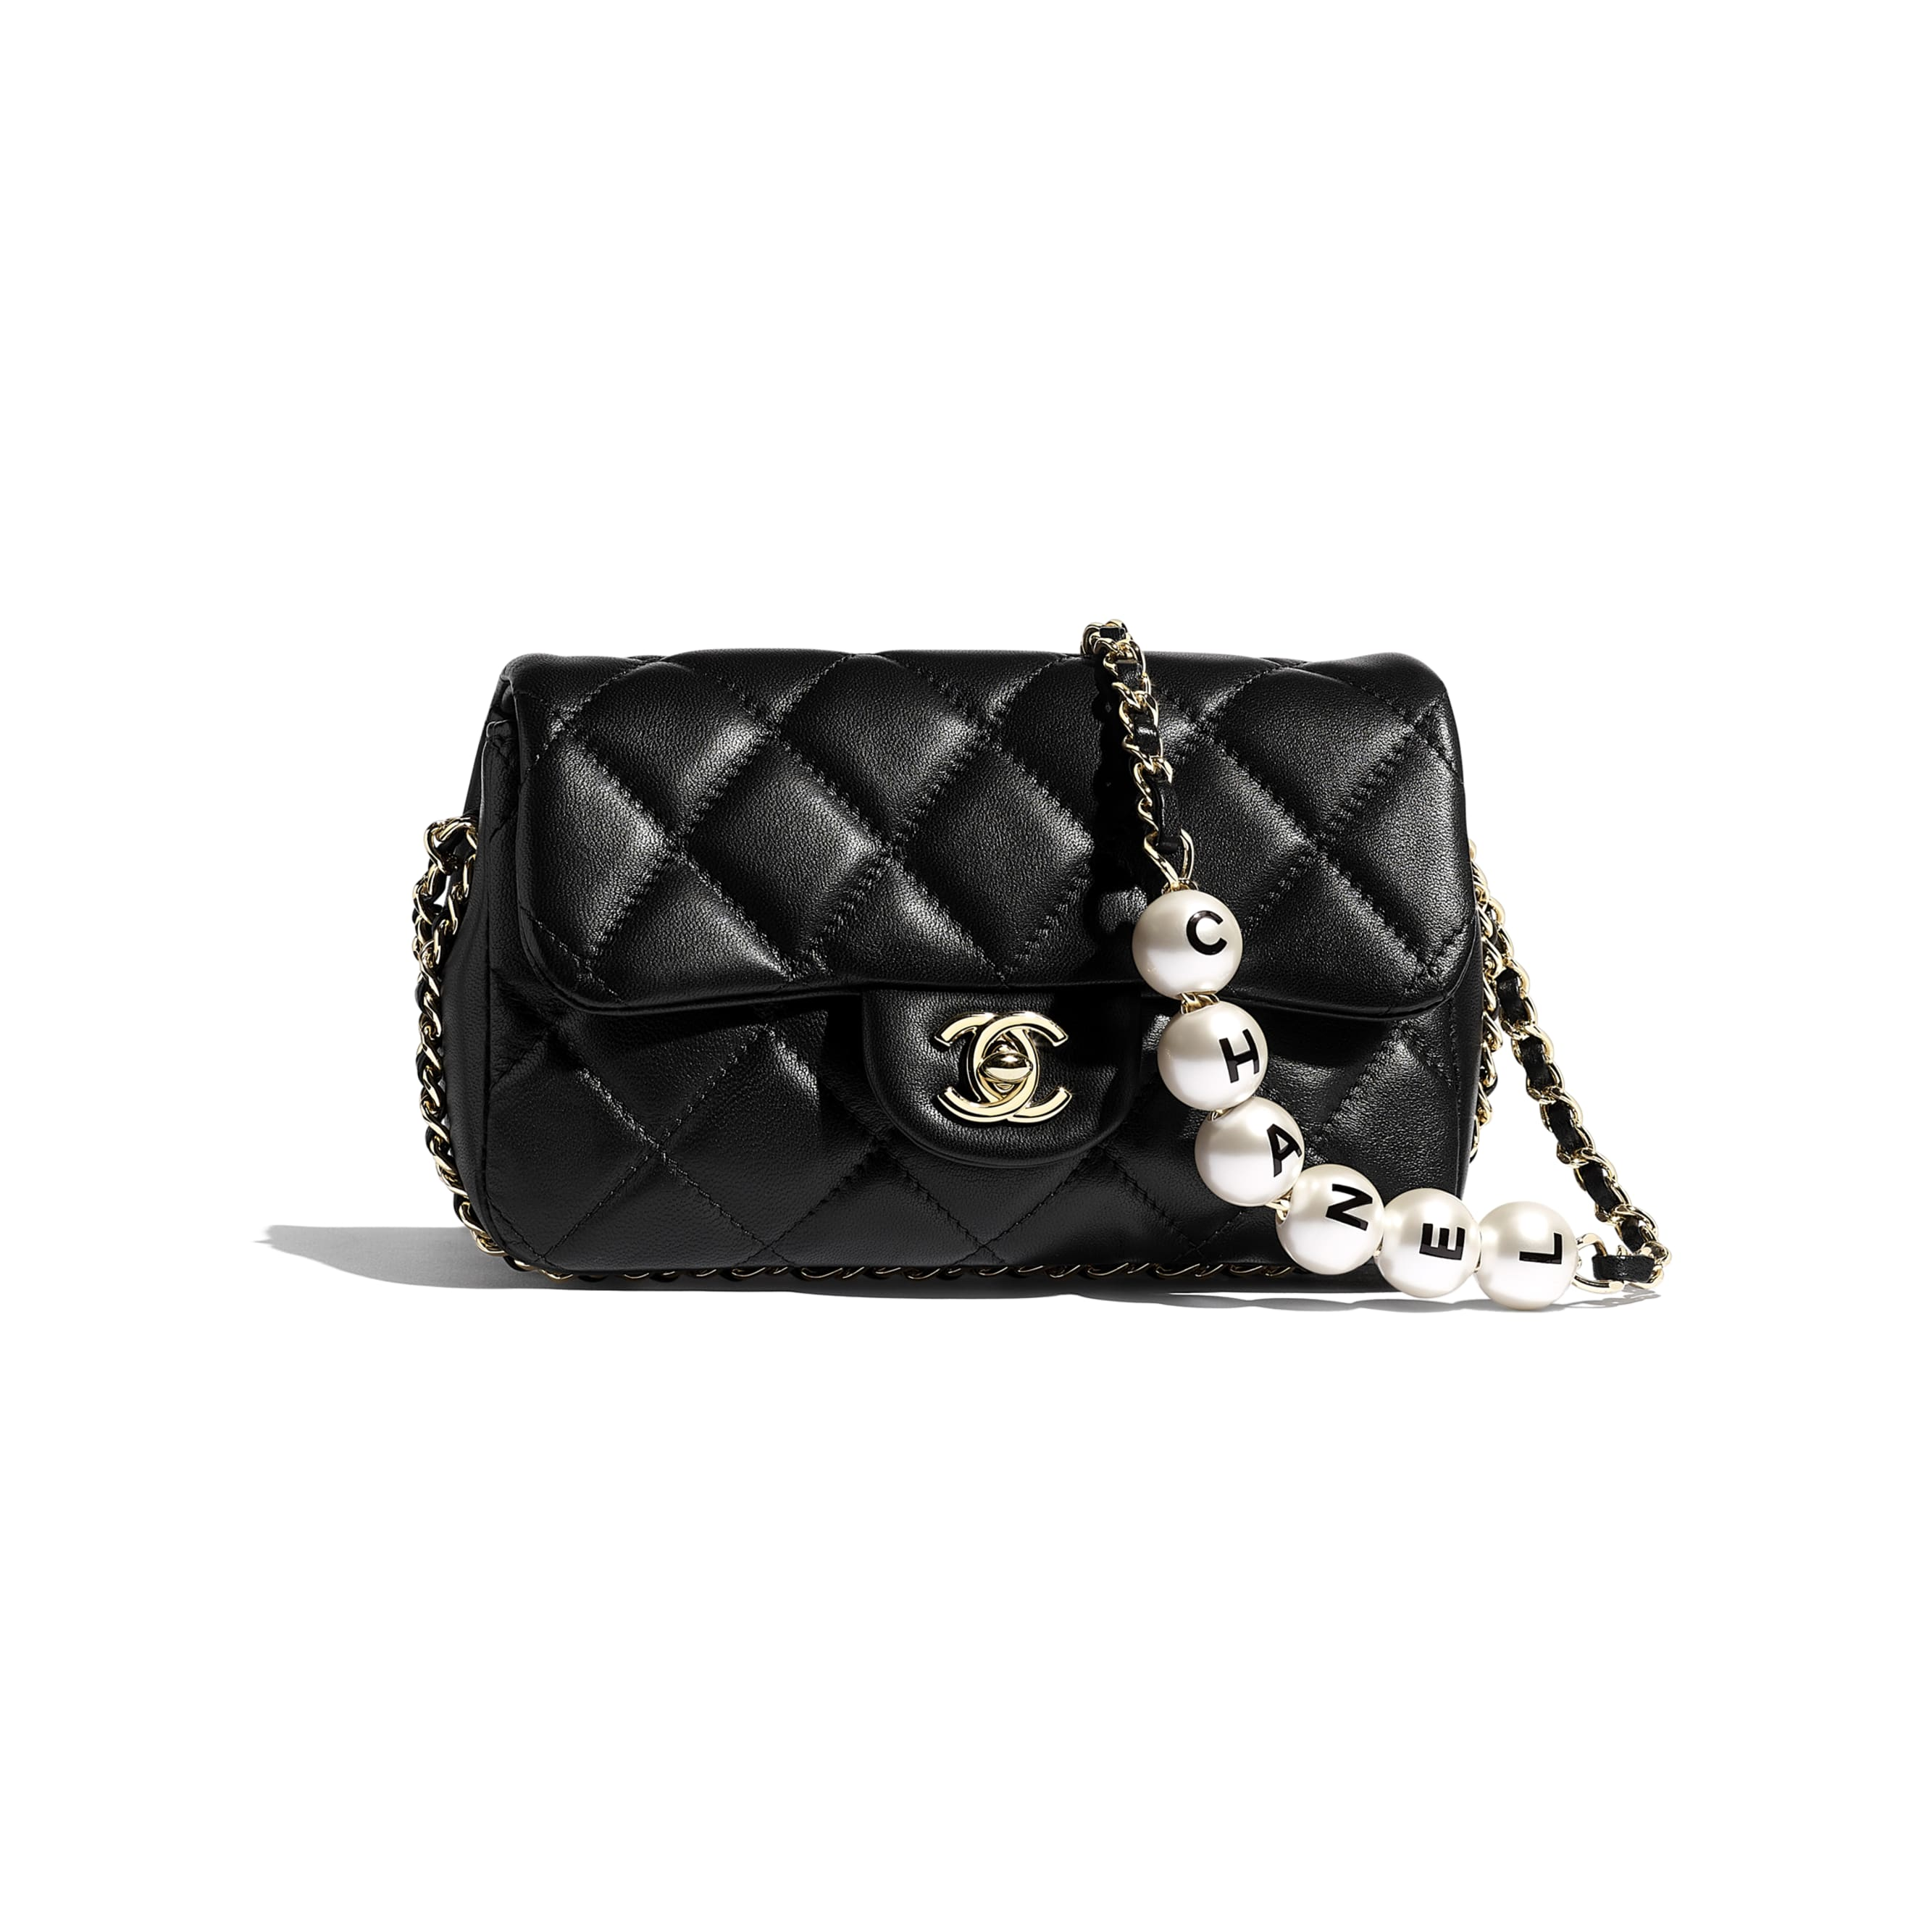 Small Flap Bag - Black - Lambskin, Imitation Pearls & Gold Metal - Default view - see standard sized version